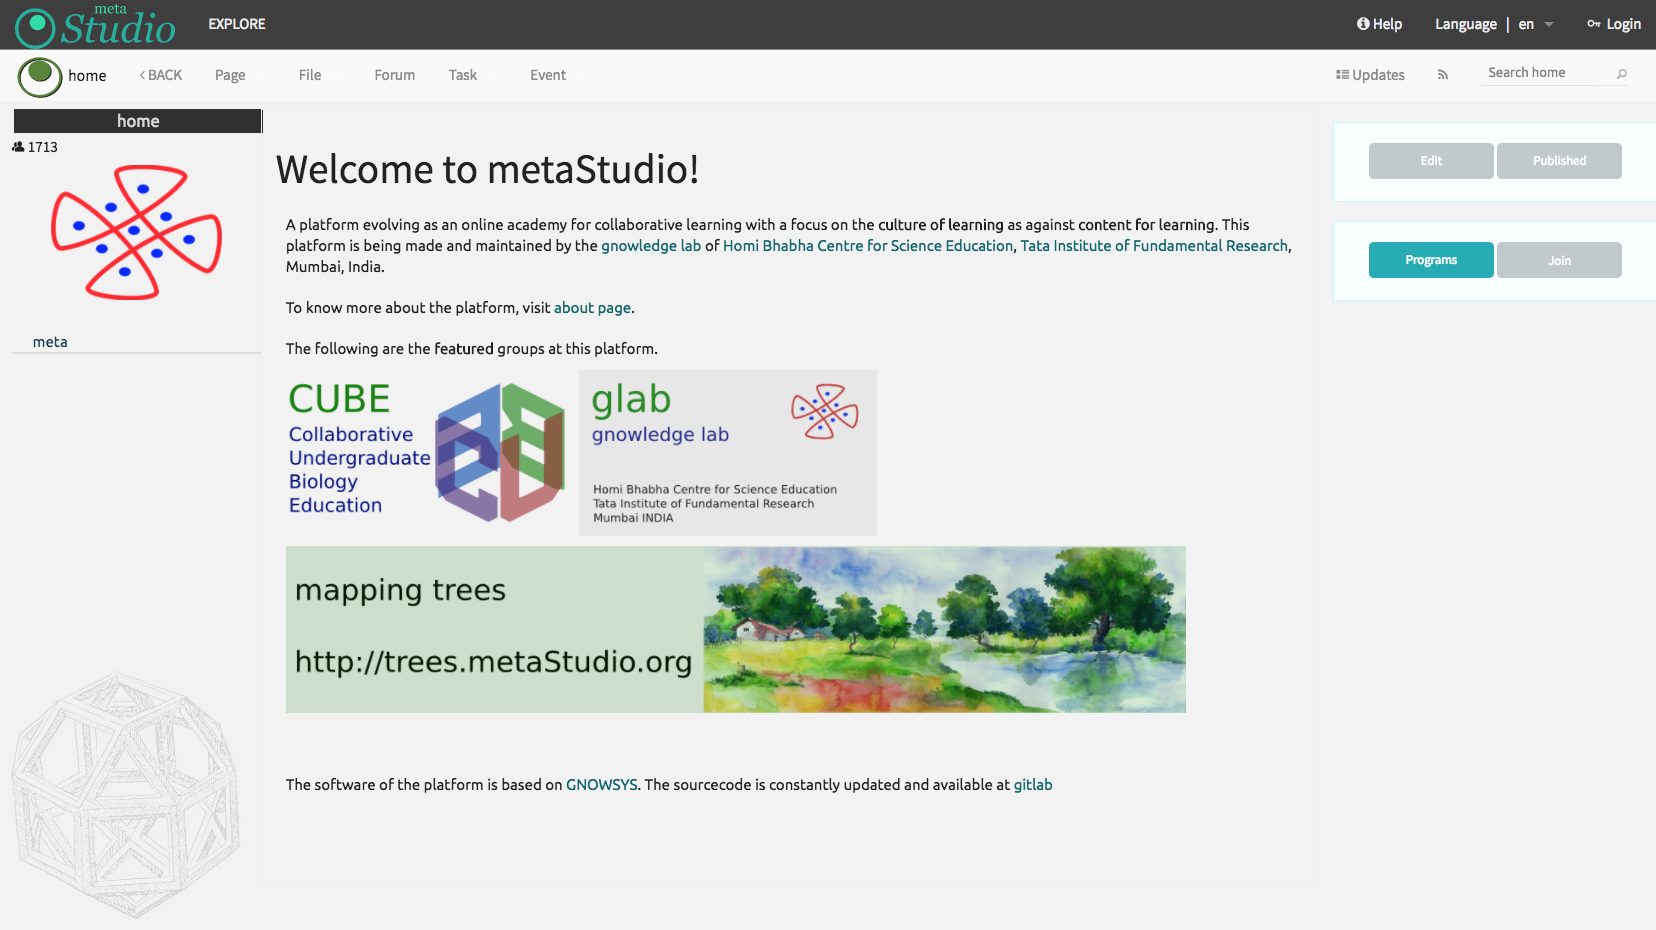 metastudio.org